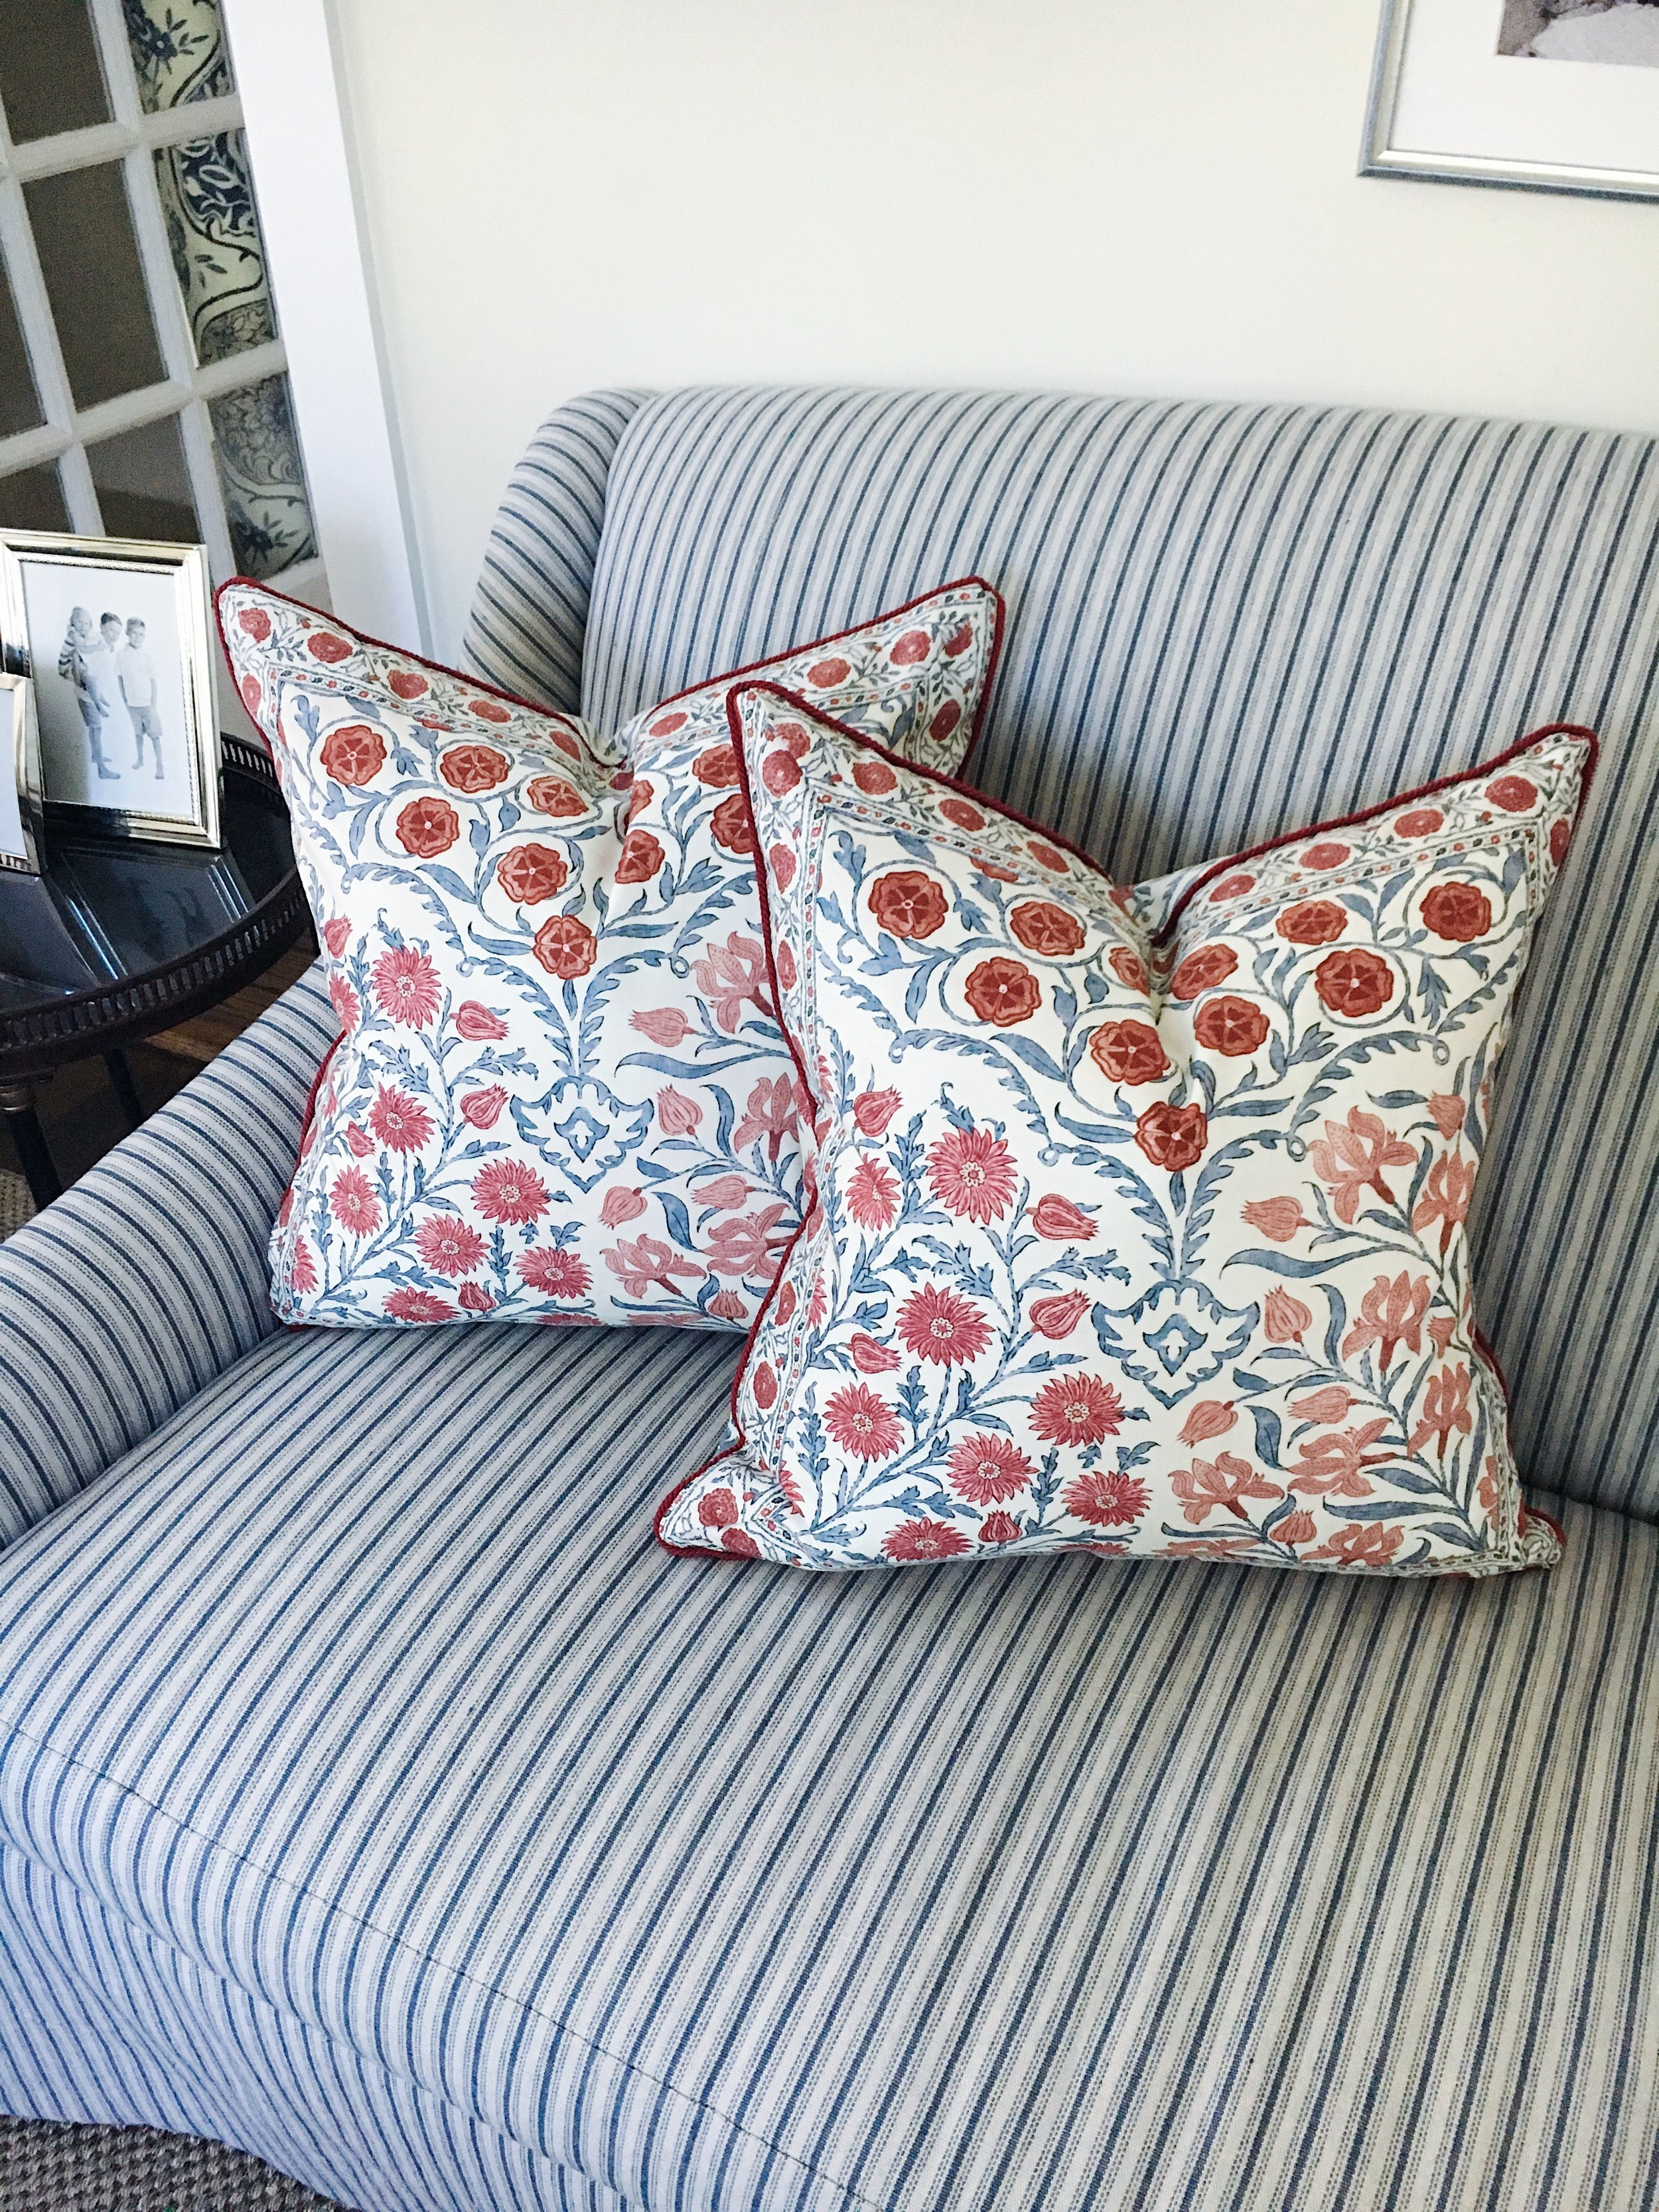 Some of the most gorgeous pillows we've designed to date!